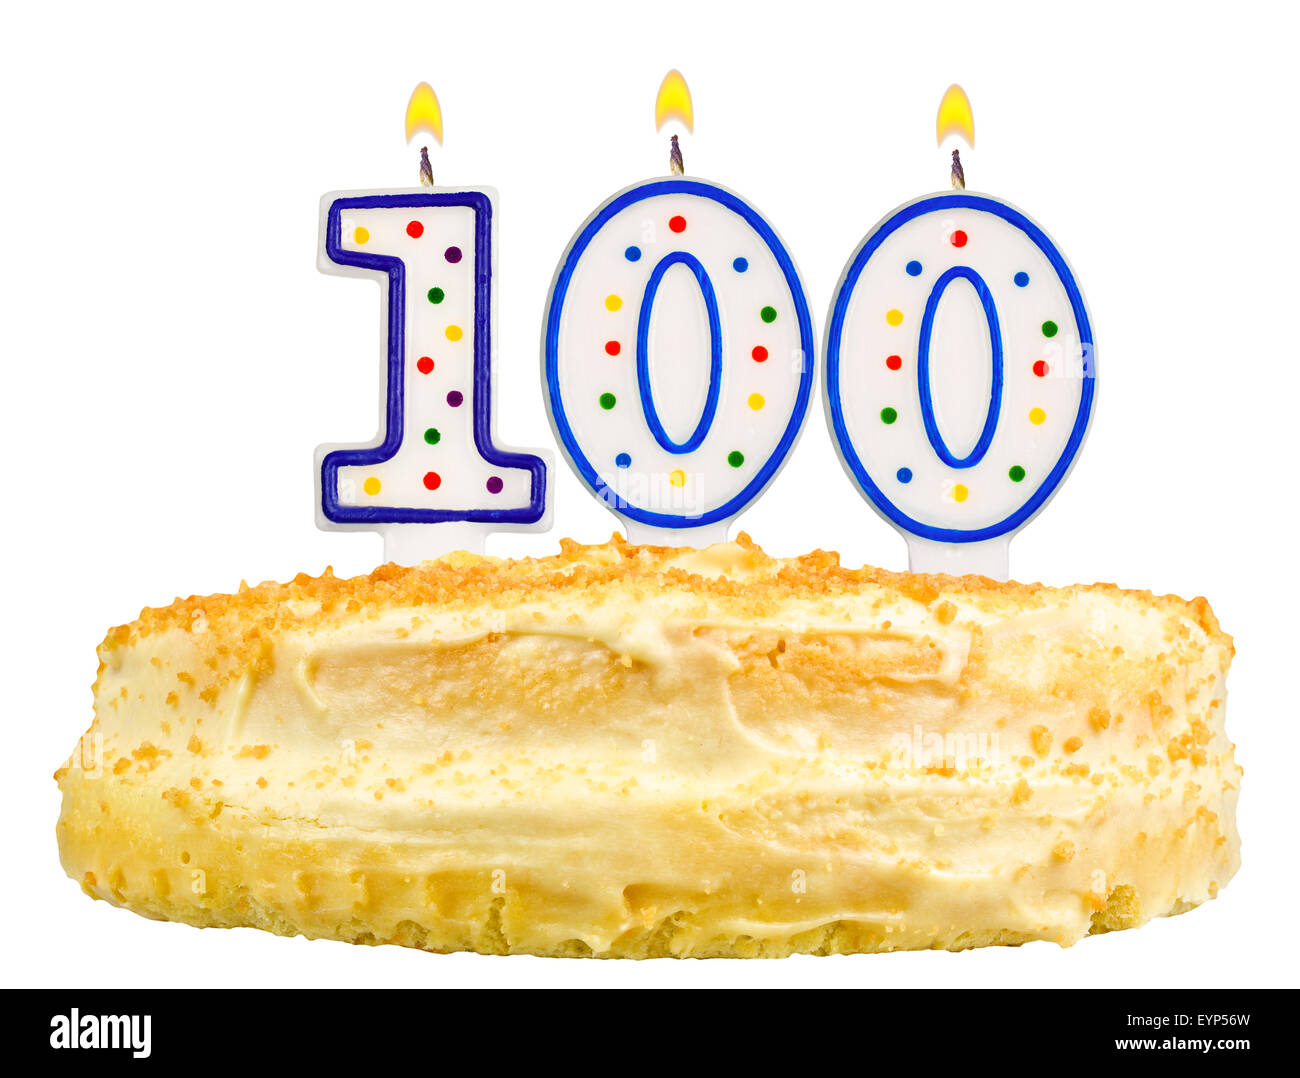 Birthday Cake With Candles Number One Hundred Isolated On White Background